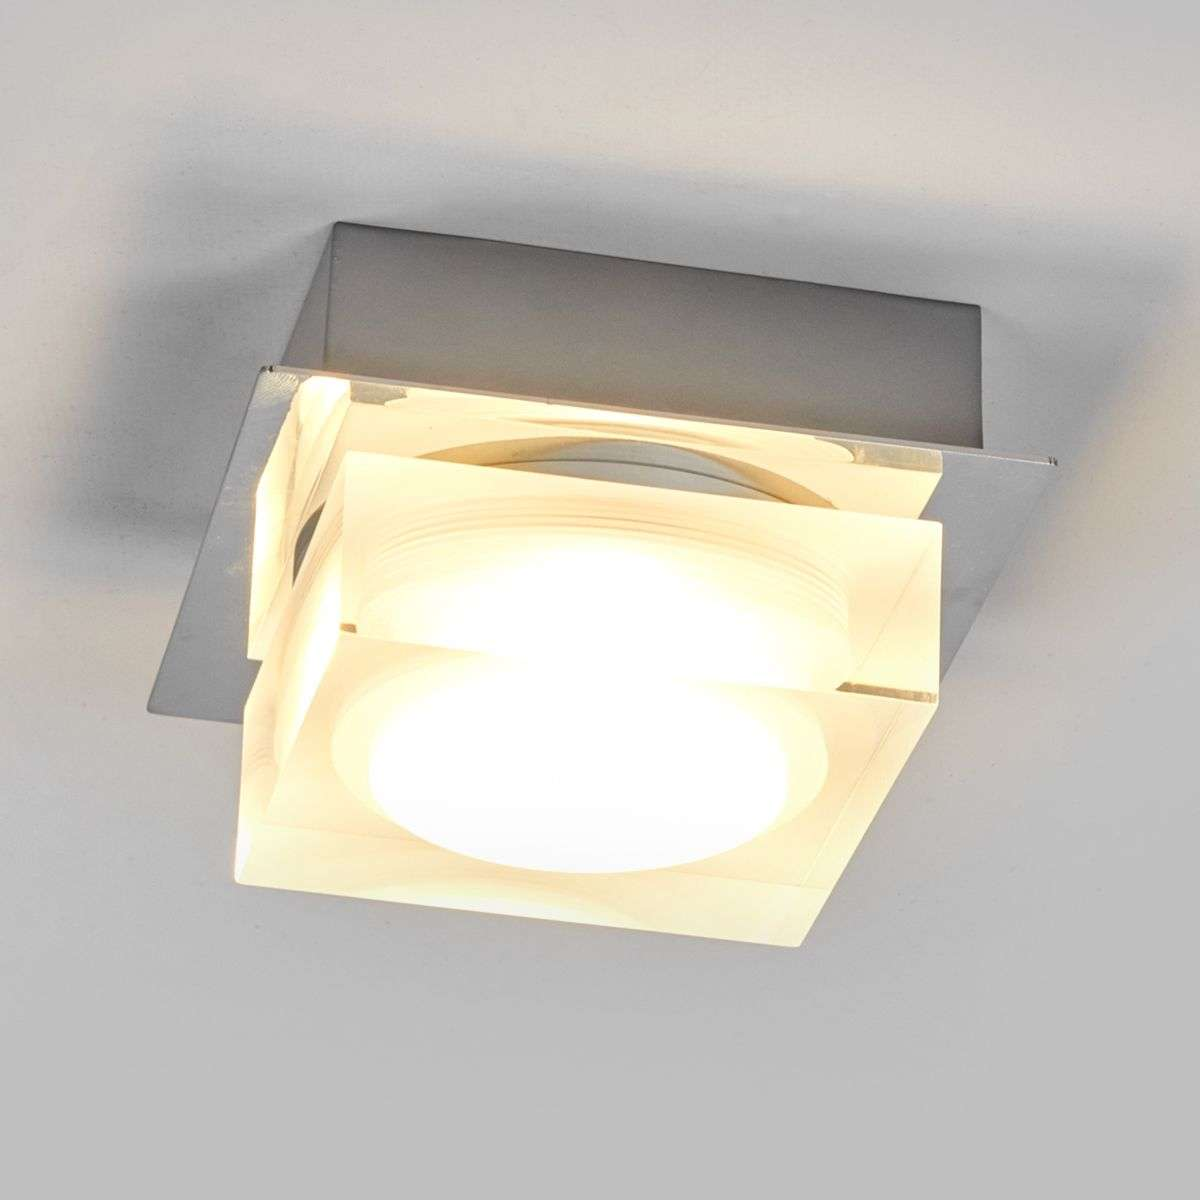 Decorative led ceiling lamp birte for bathrooms lights decorative led ceiling lamp birte for bathrooms 9641067 32 aloadofball Images